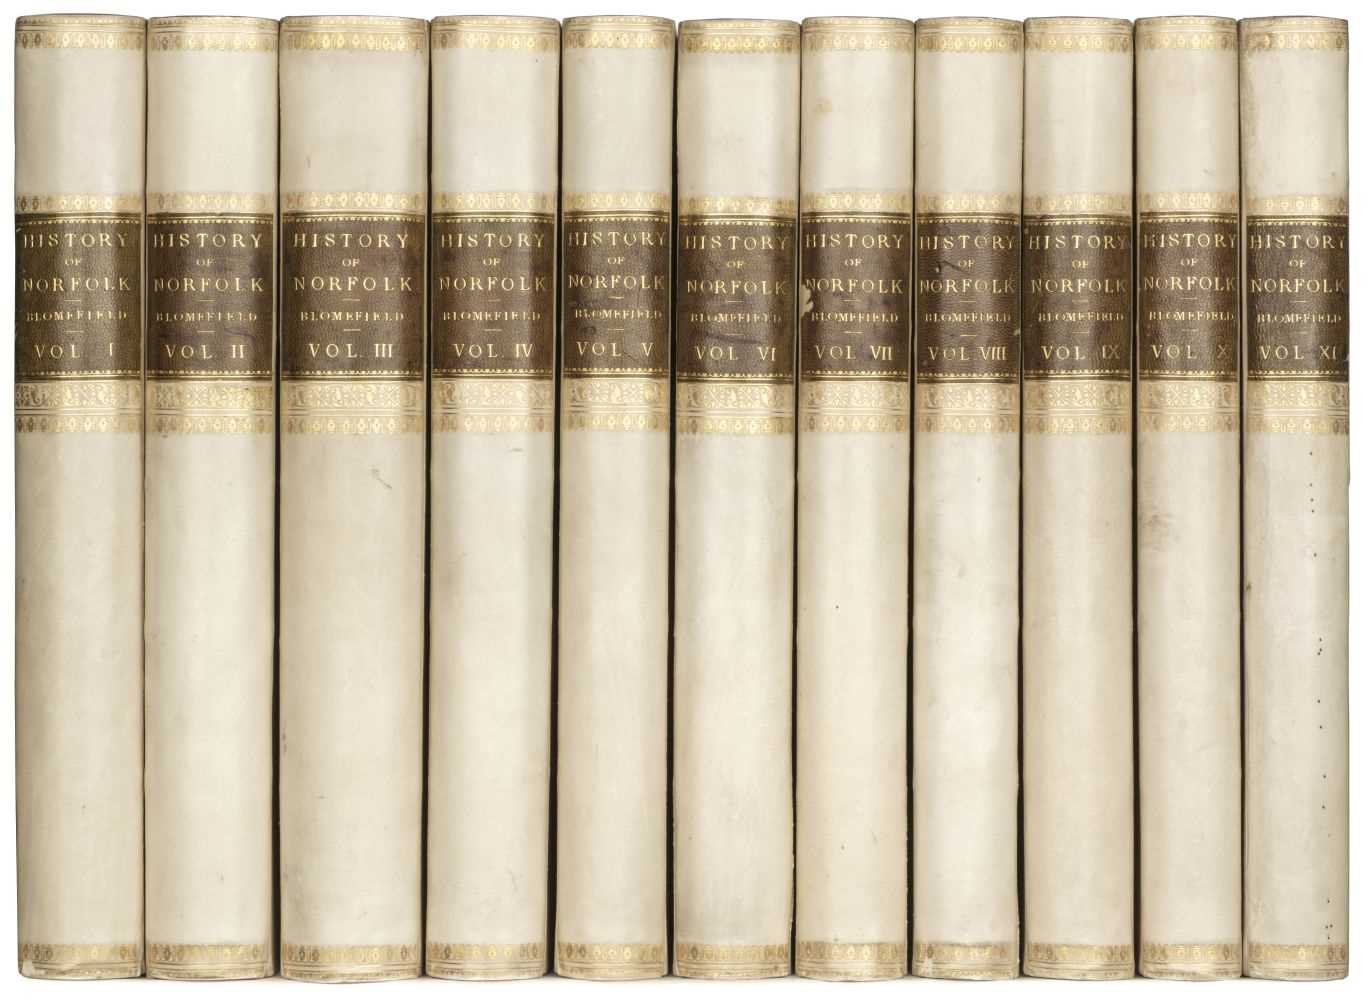 Lot 38 - Blomefield (Francis). An Essay towards a Topographical History of ... Norfolk, 11 vols., 1805-10